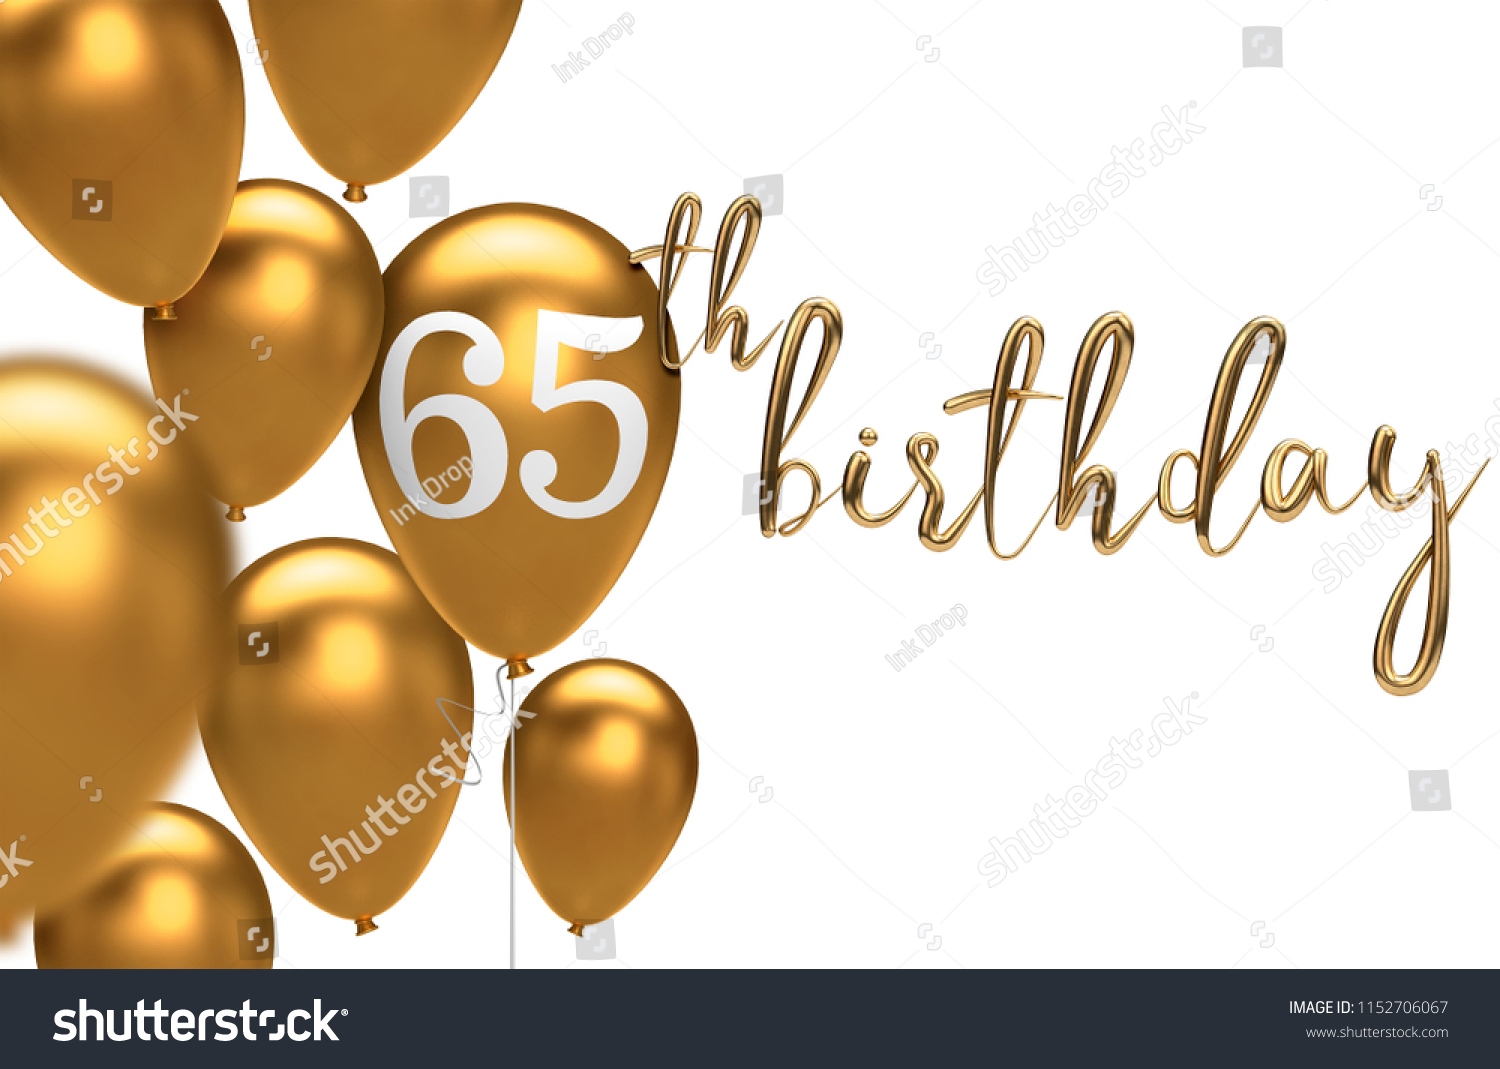 Gold Happy 65th Birthday Balloon Greeting Background 3D Rendering